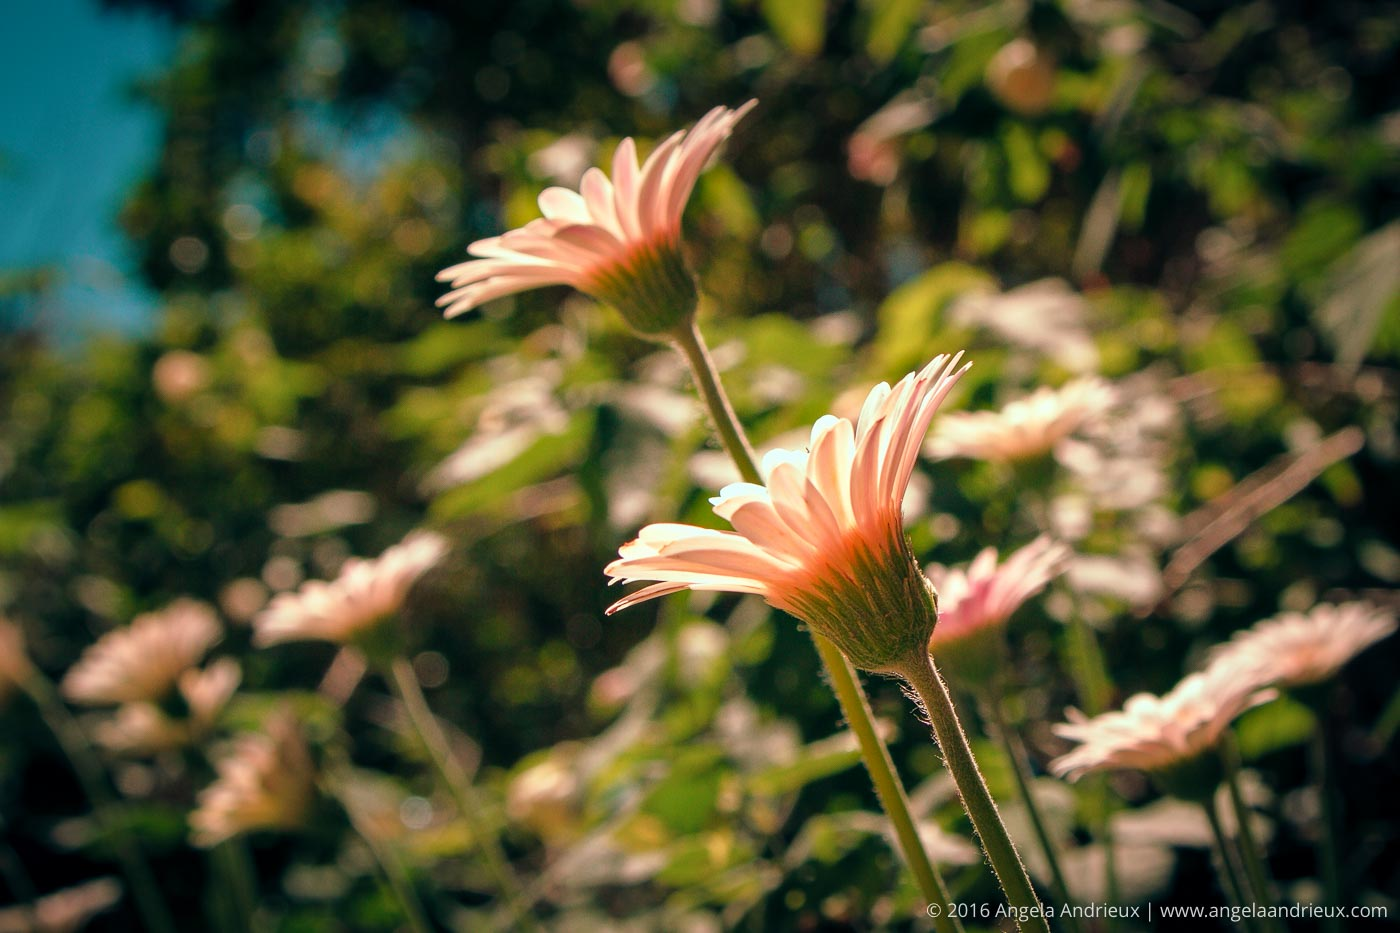 Flower | Balboa Park | San Diego, CA | Processed with Topaz ReStyle